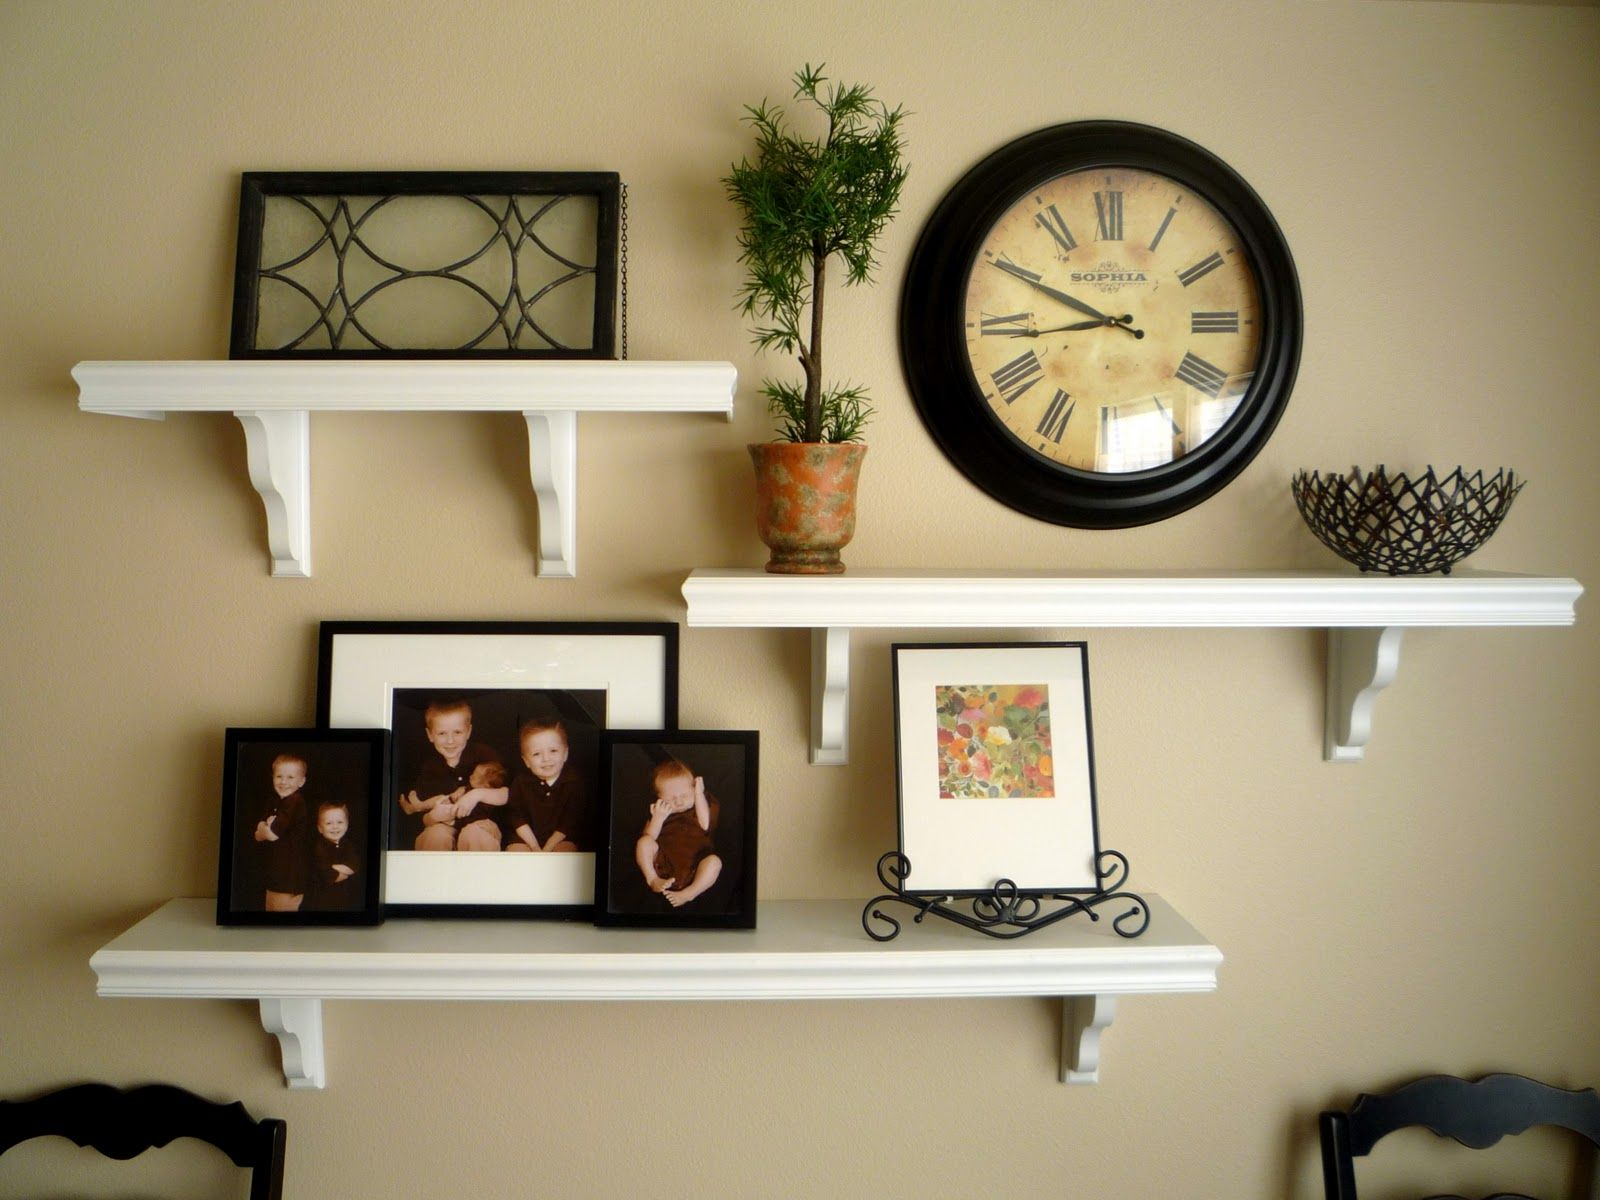 Where To Hang Wall Clock In Living Room Picture And Shelves On Wall Together It All Started